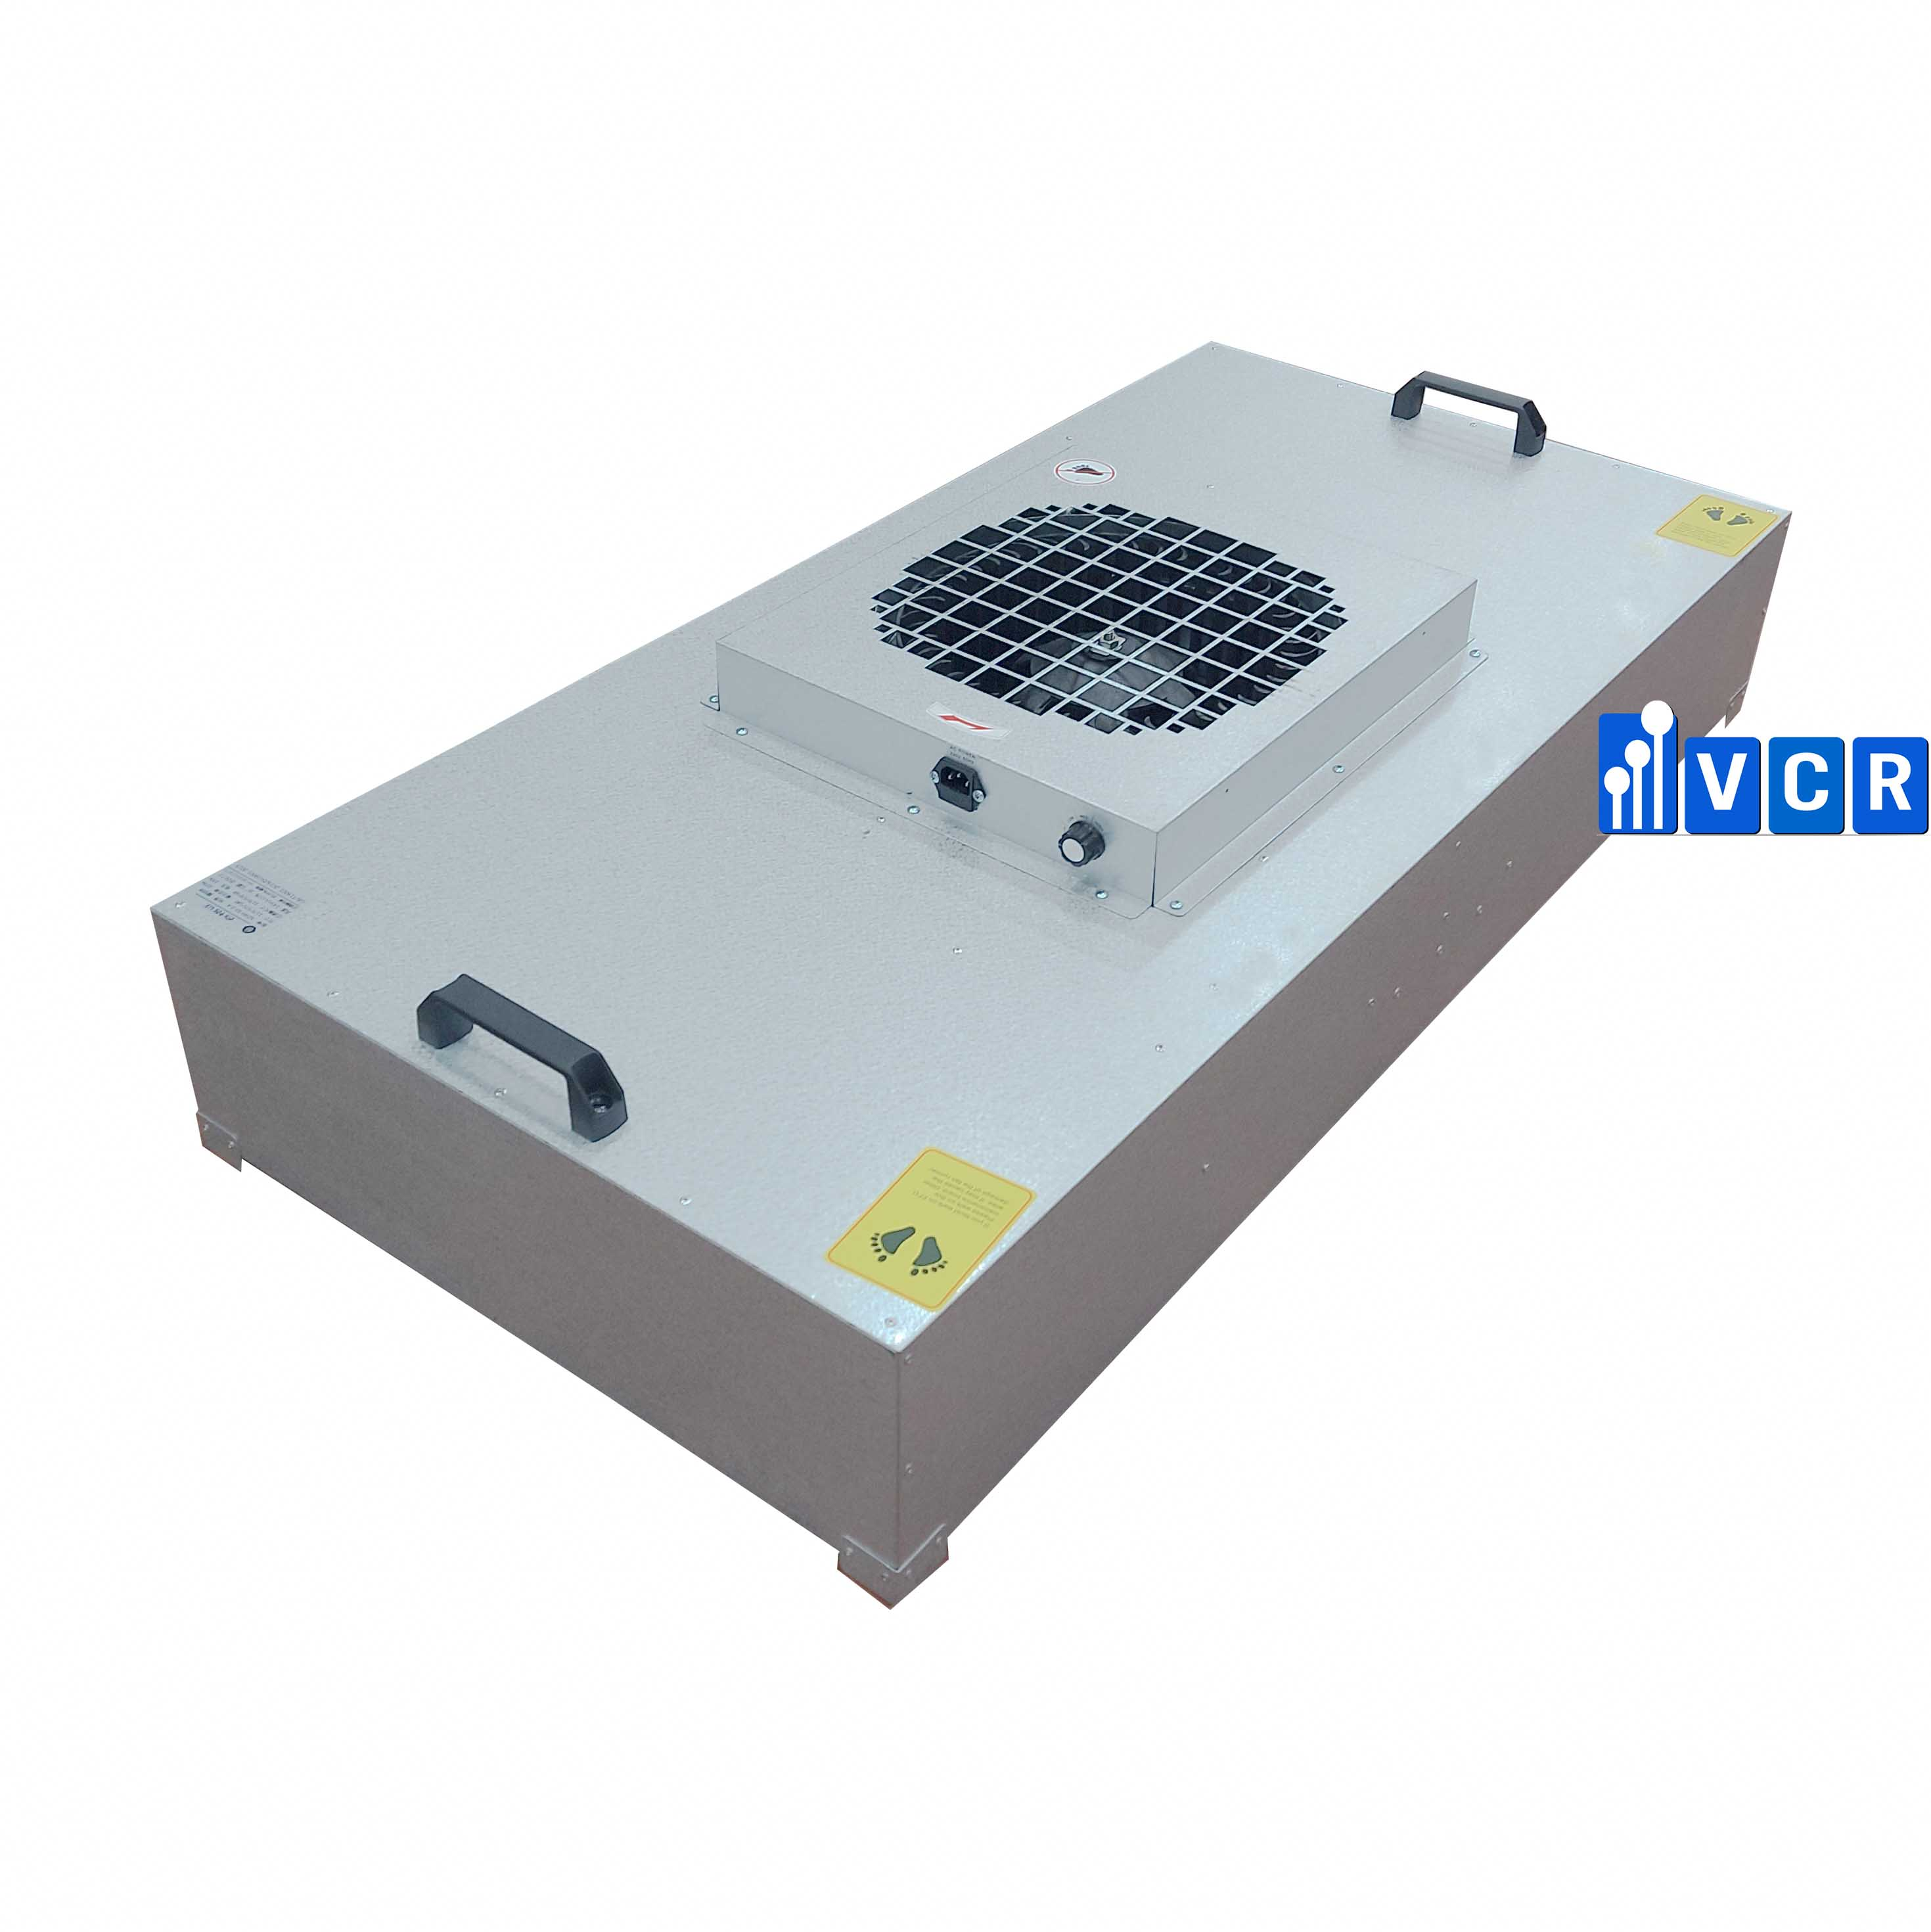 Fan Filter Unit - FFU - VCR1175